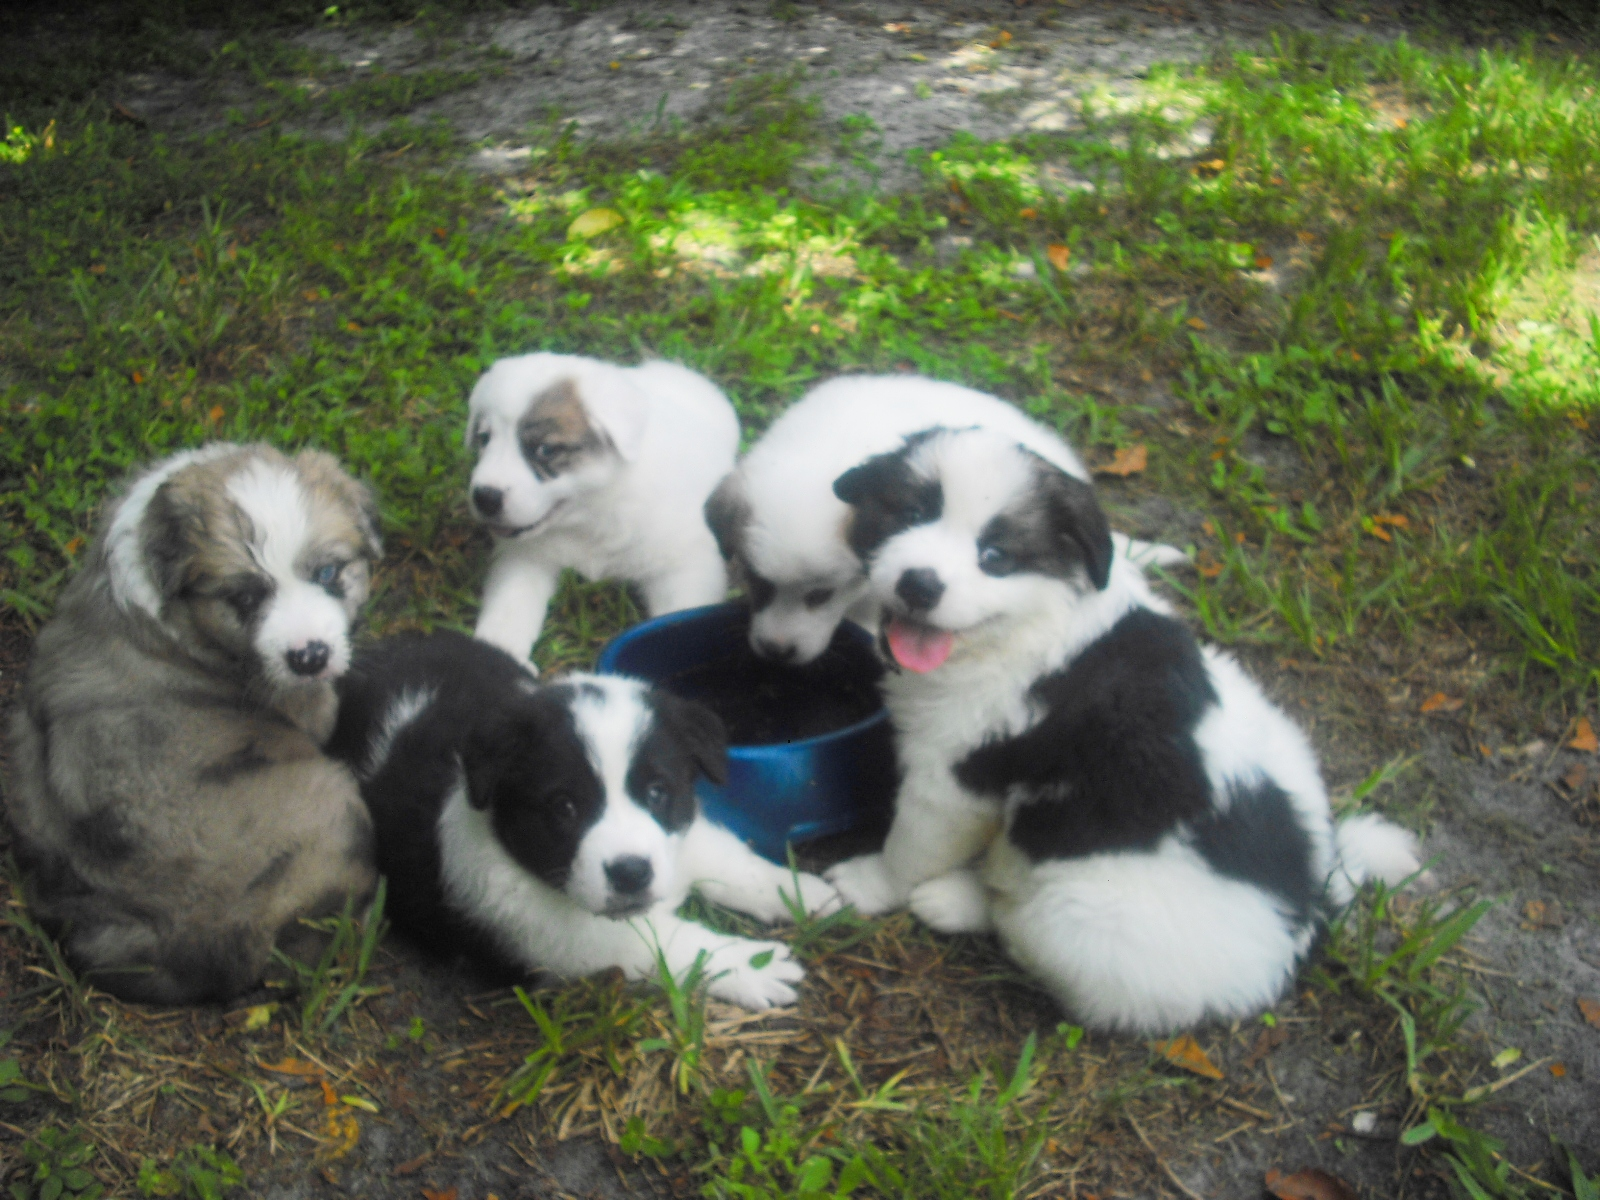 Border Collie + Great Pyrenees = My Puppies! ~ Adopted